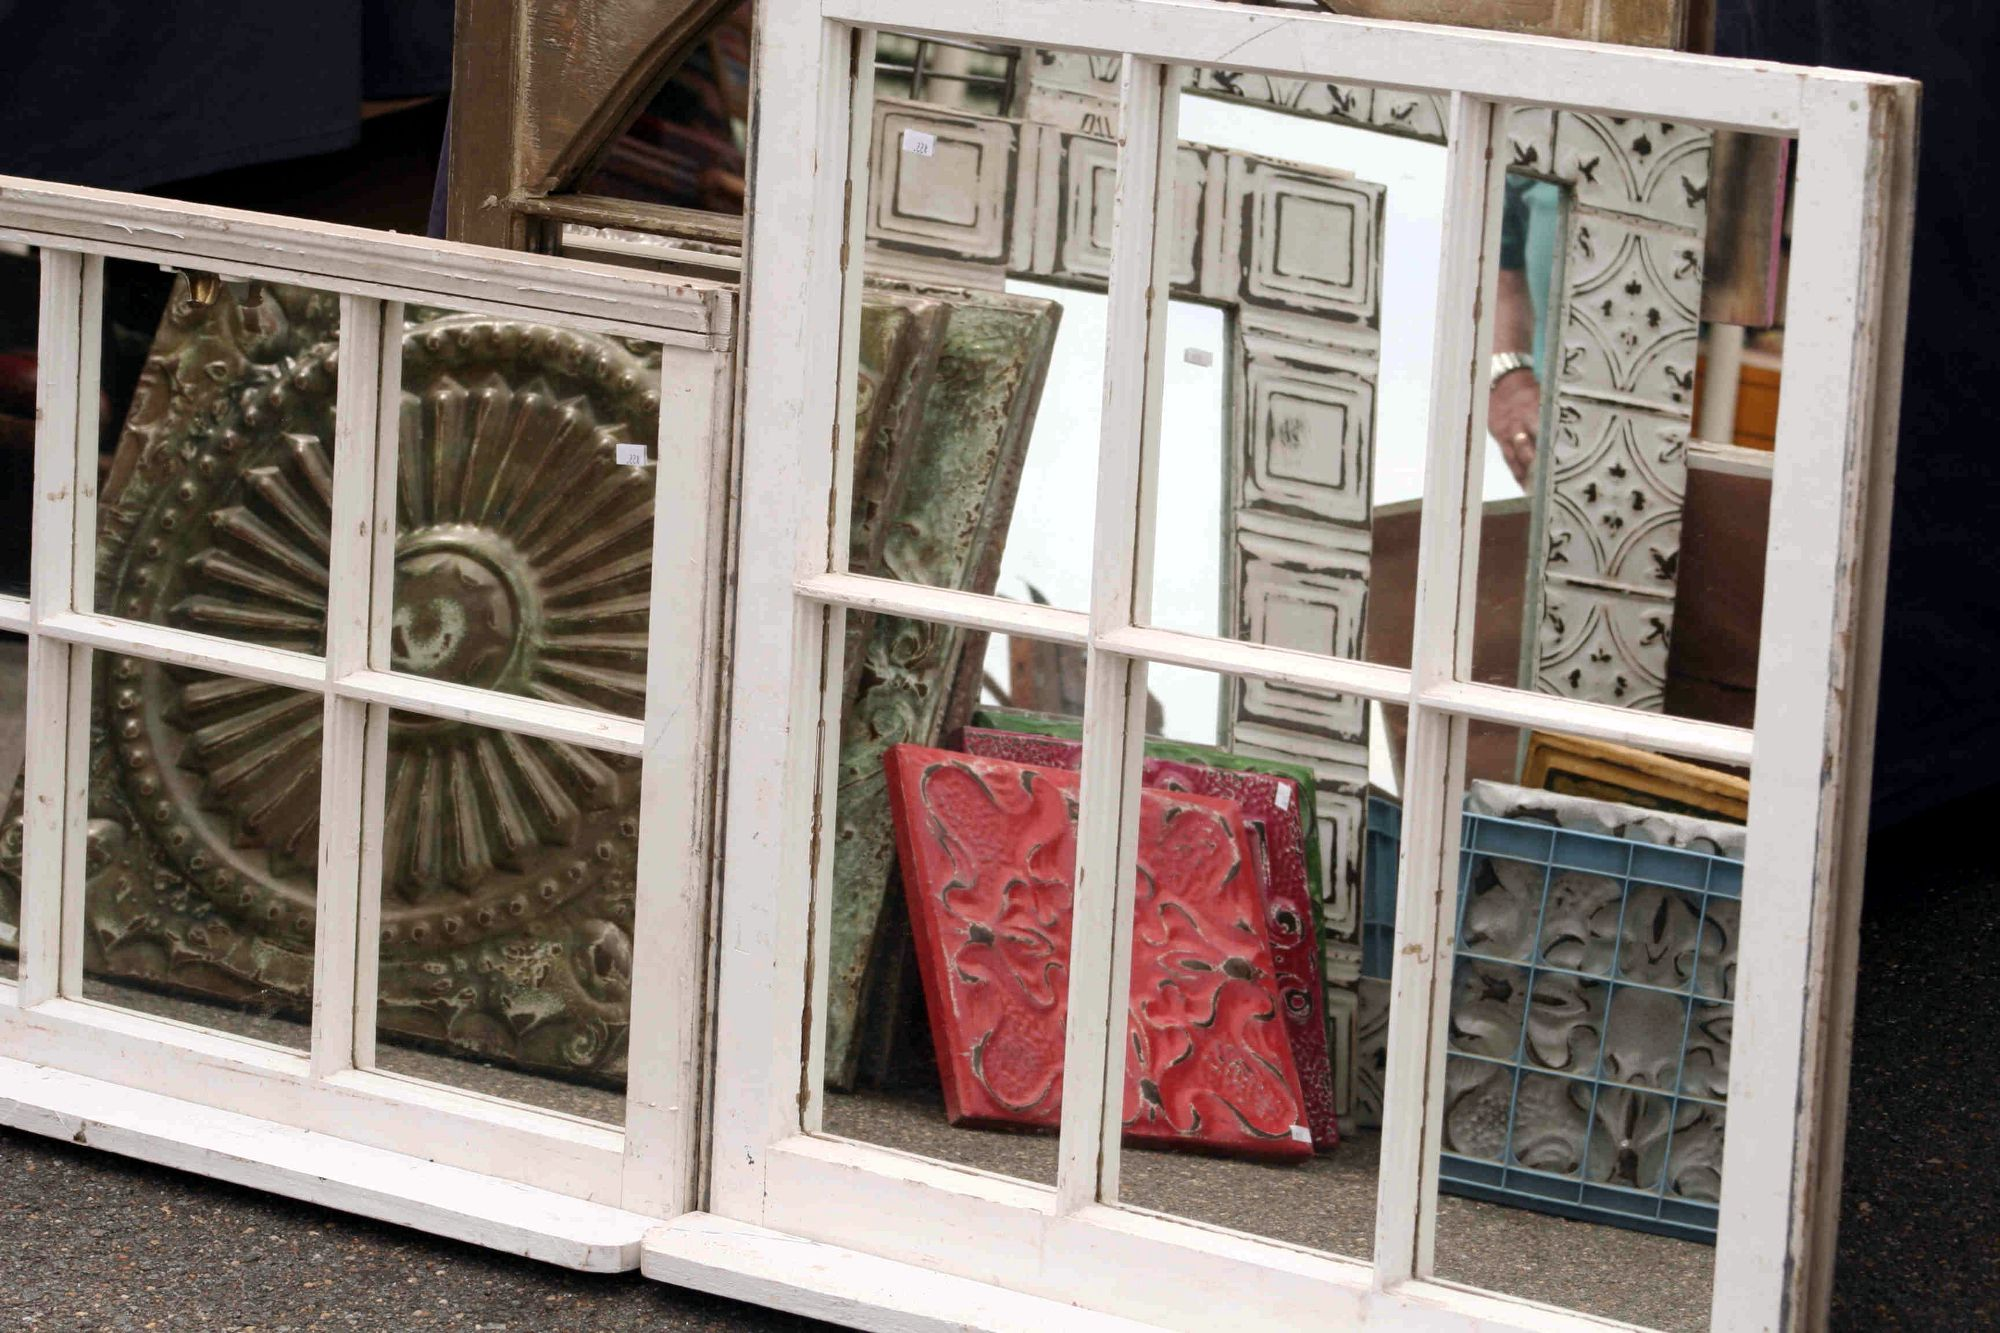 decorative bathroom windows decorative windows for.htm ways to repurpose old windows as art  ways to repurpose old windows as art